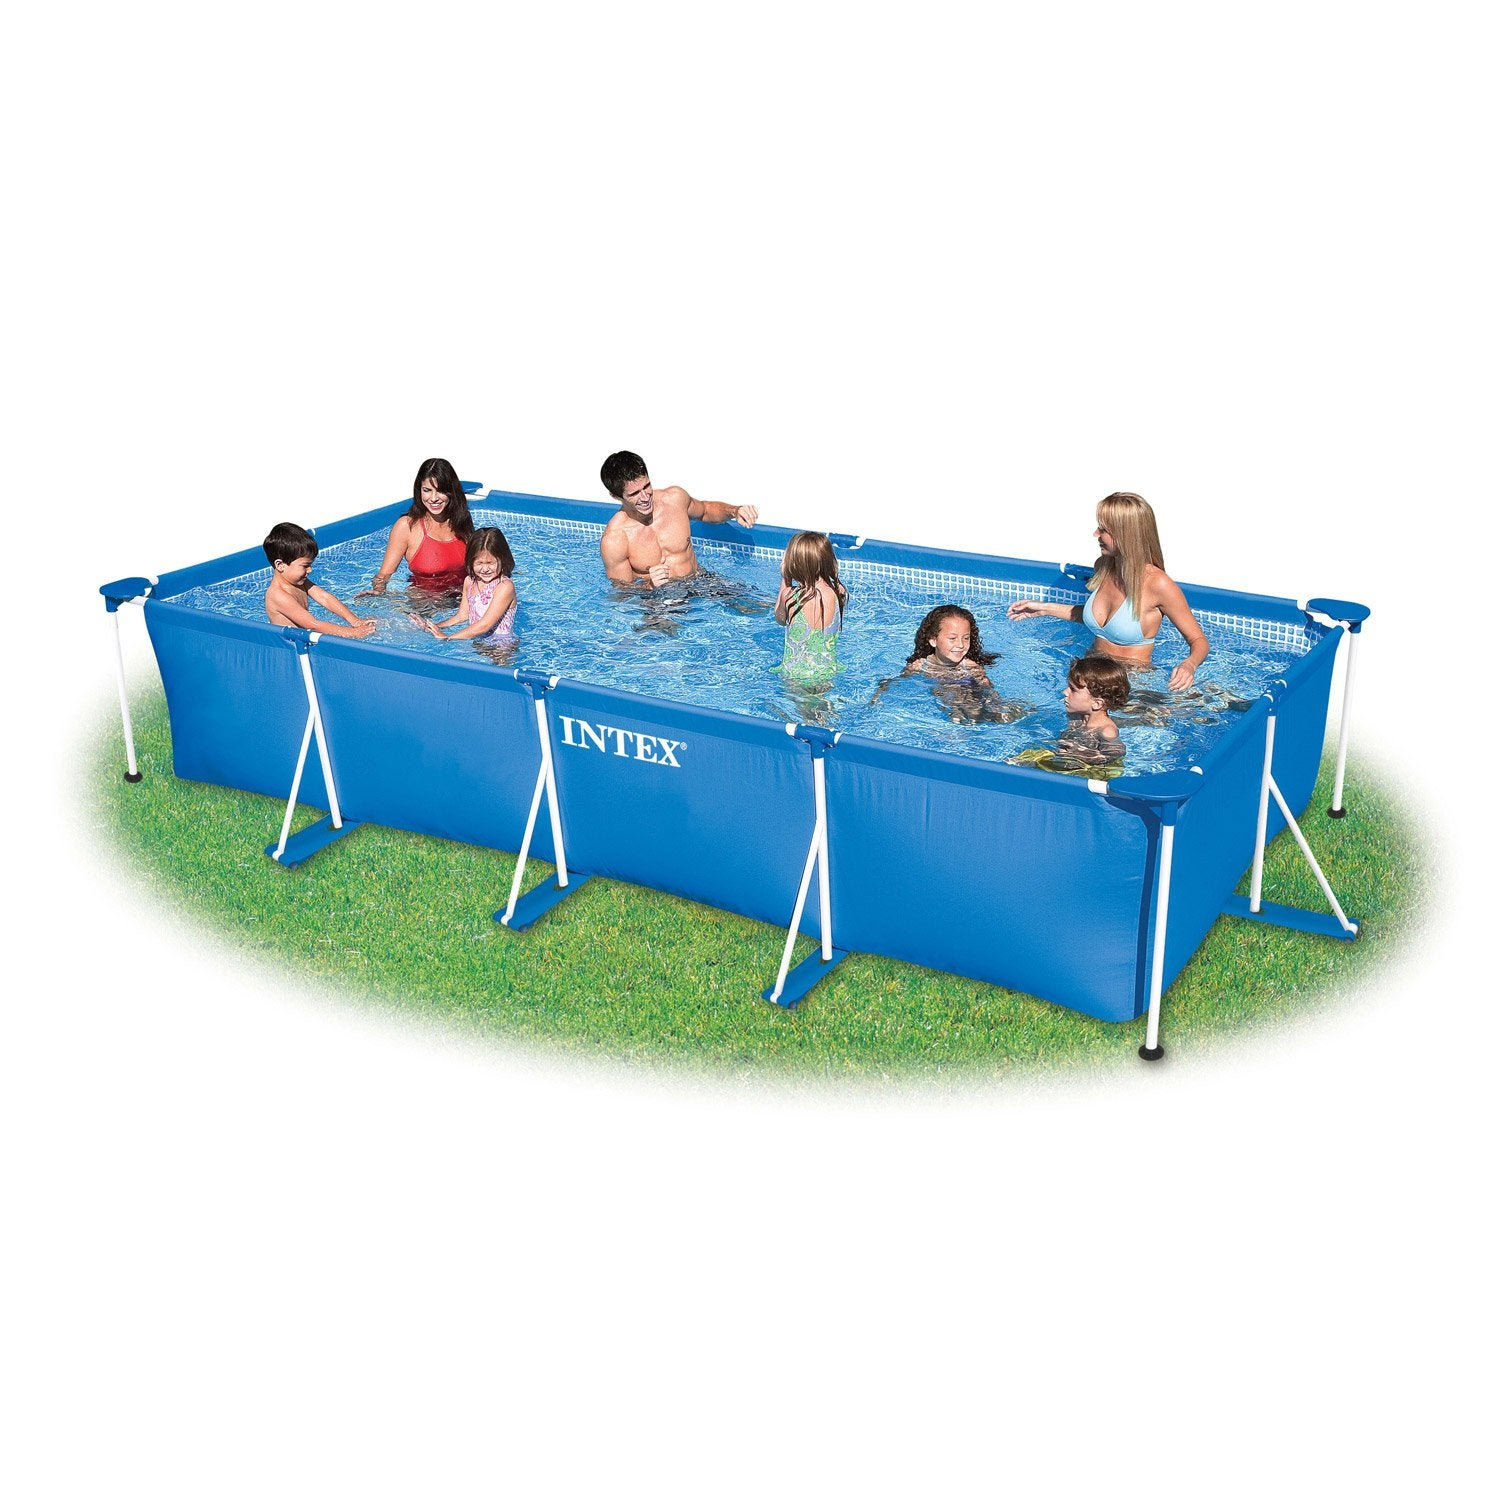 Piscine boudin leroy merlin for Leroy merlin bache piscine